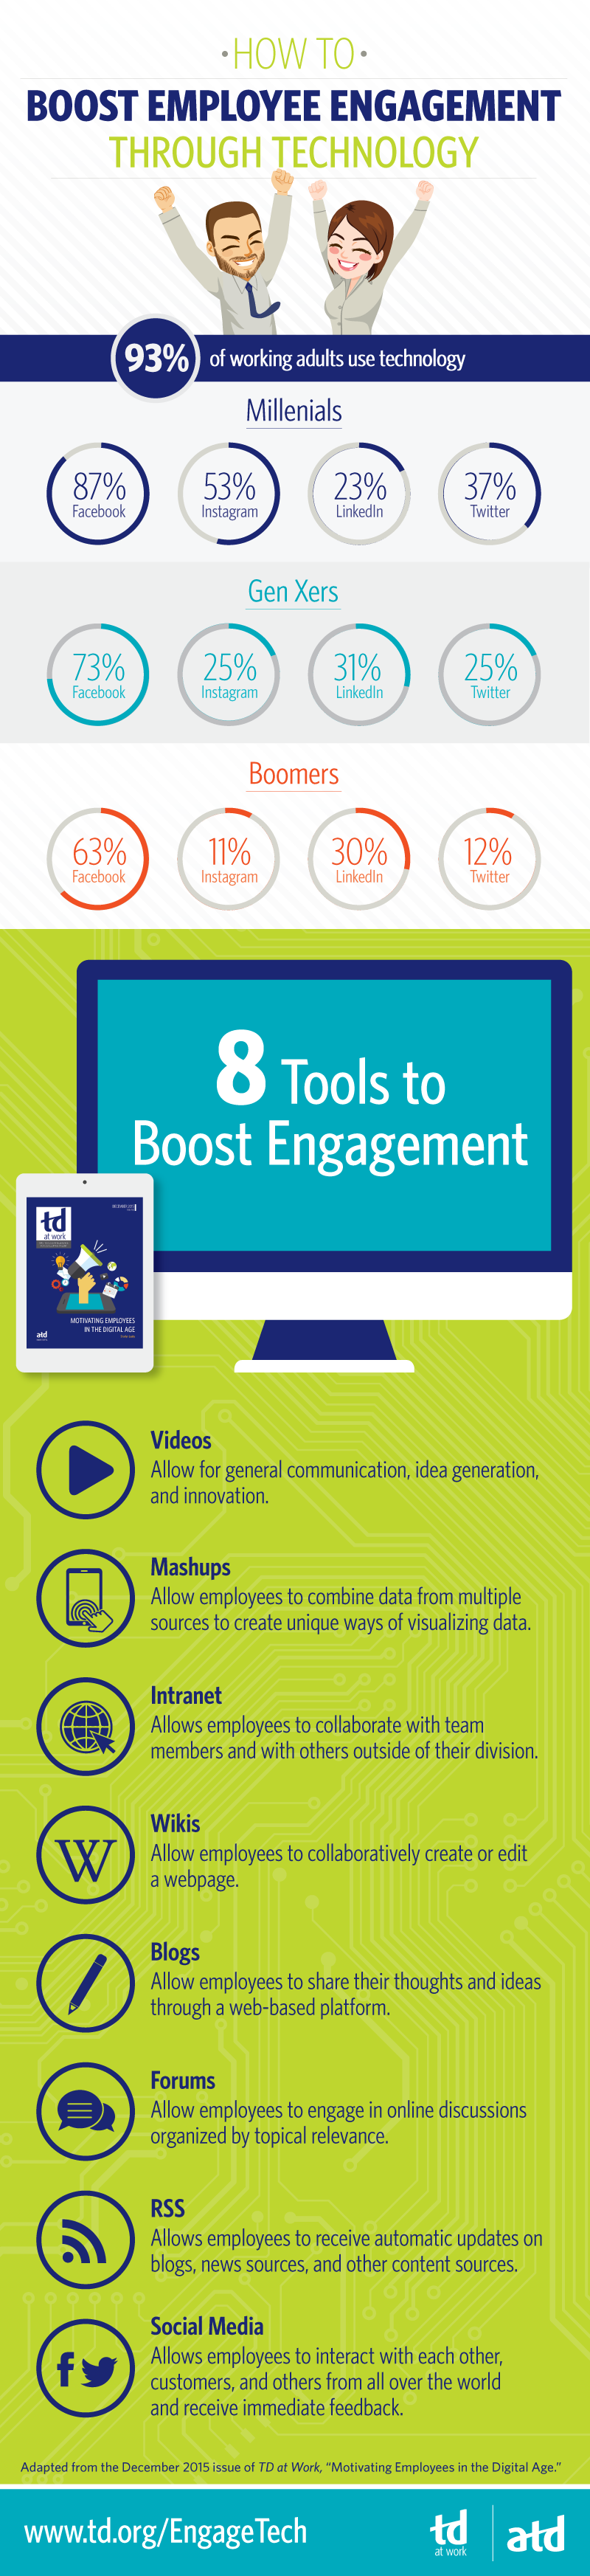 Infographic: How to Boost Employee Engagement Through Technology from ATD